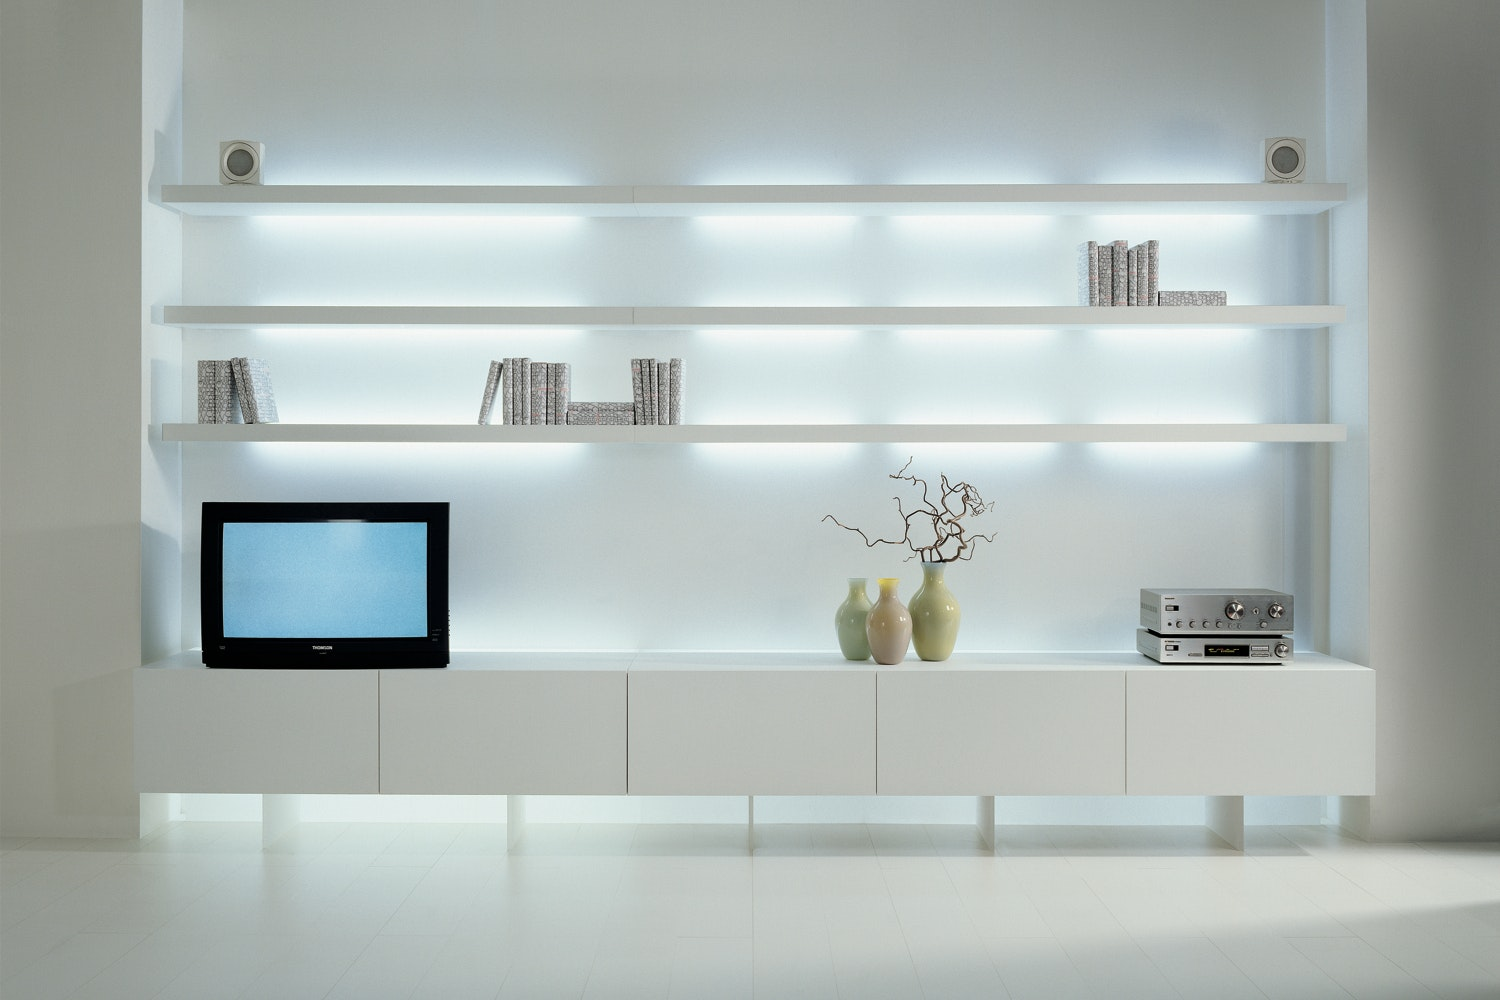 New Concepts Wall Mounted Storage Unit by Lodovico Acerbis, Massimo Castagna for Acerbis